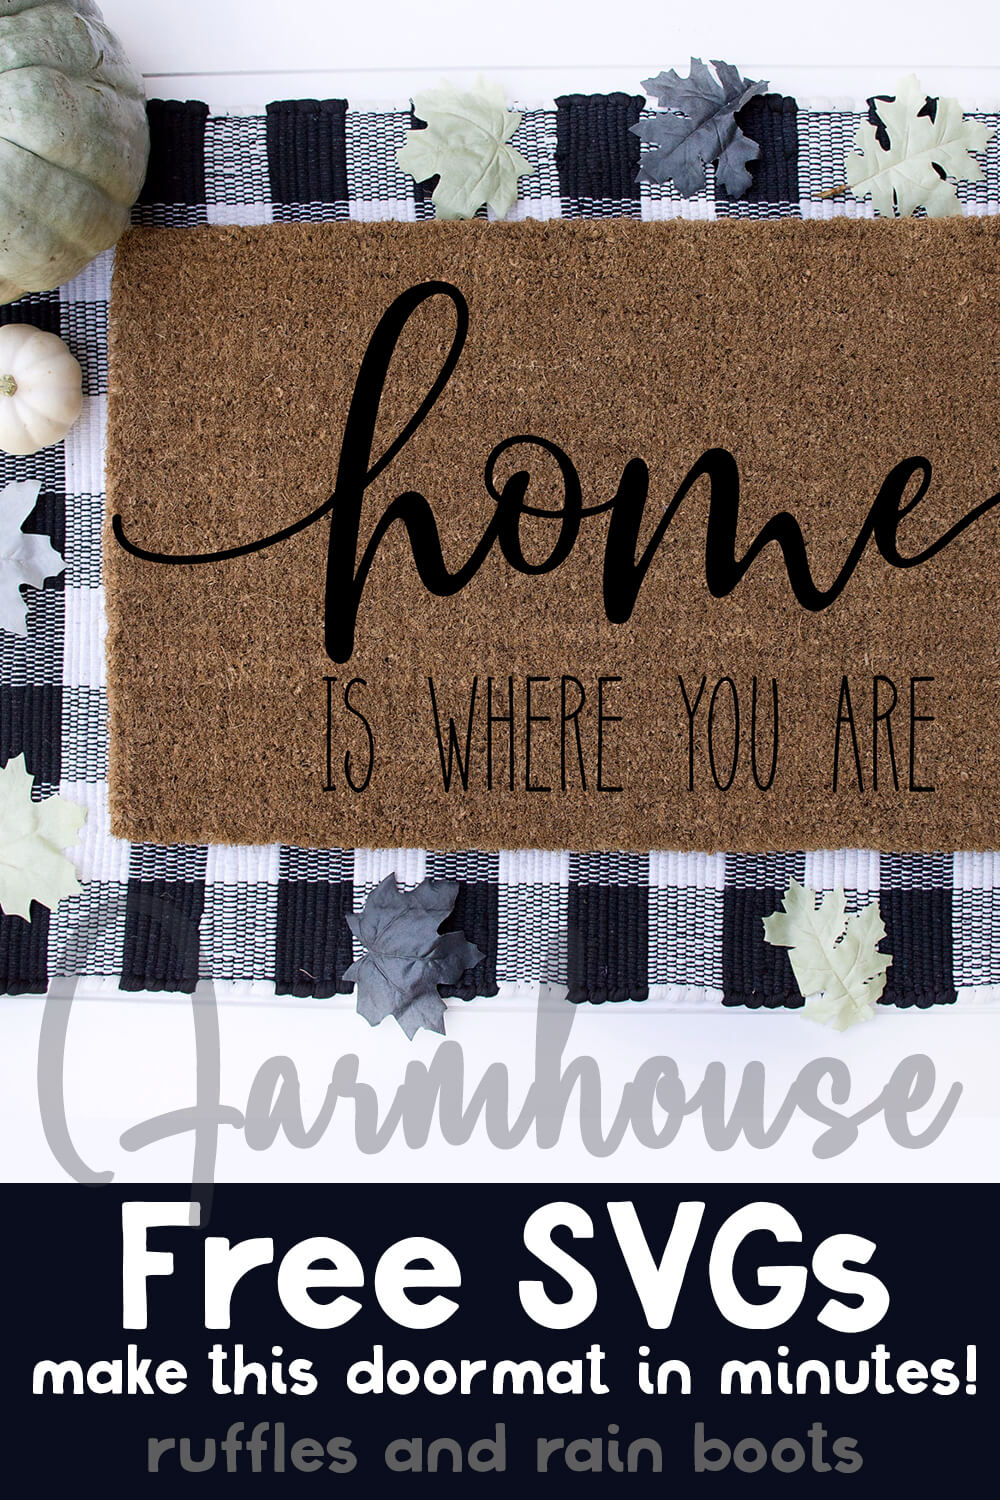 home is where you are farmhouse cut file on doormat with text which reads farmhouse free svgs make this doormat in minutes!